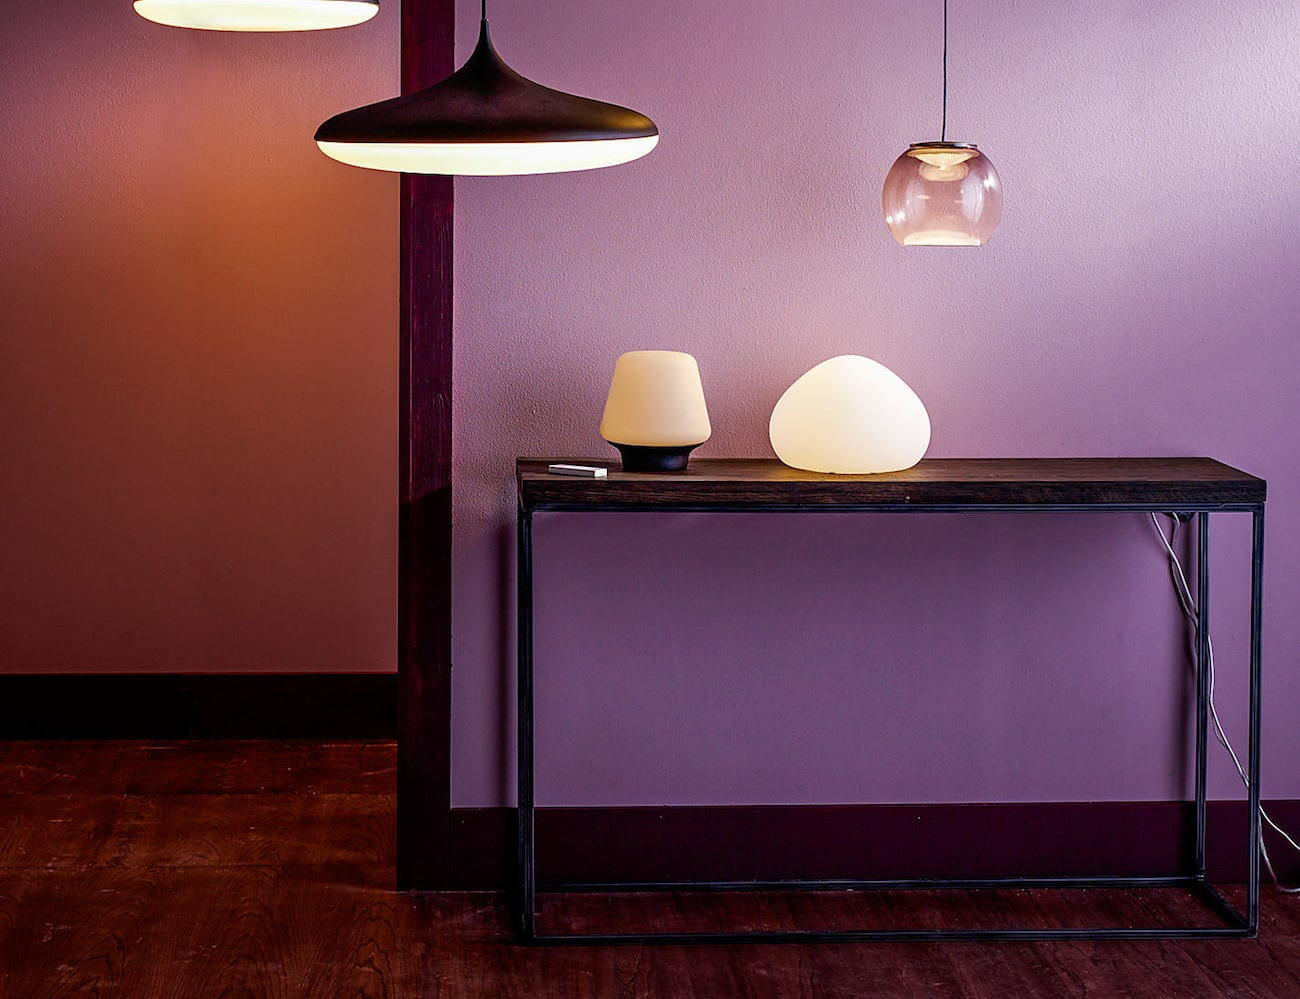 Philips Hue Wellner Dimmable Smart Led Table Lamp 187 Gadget